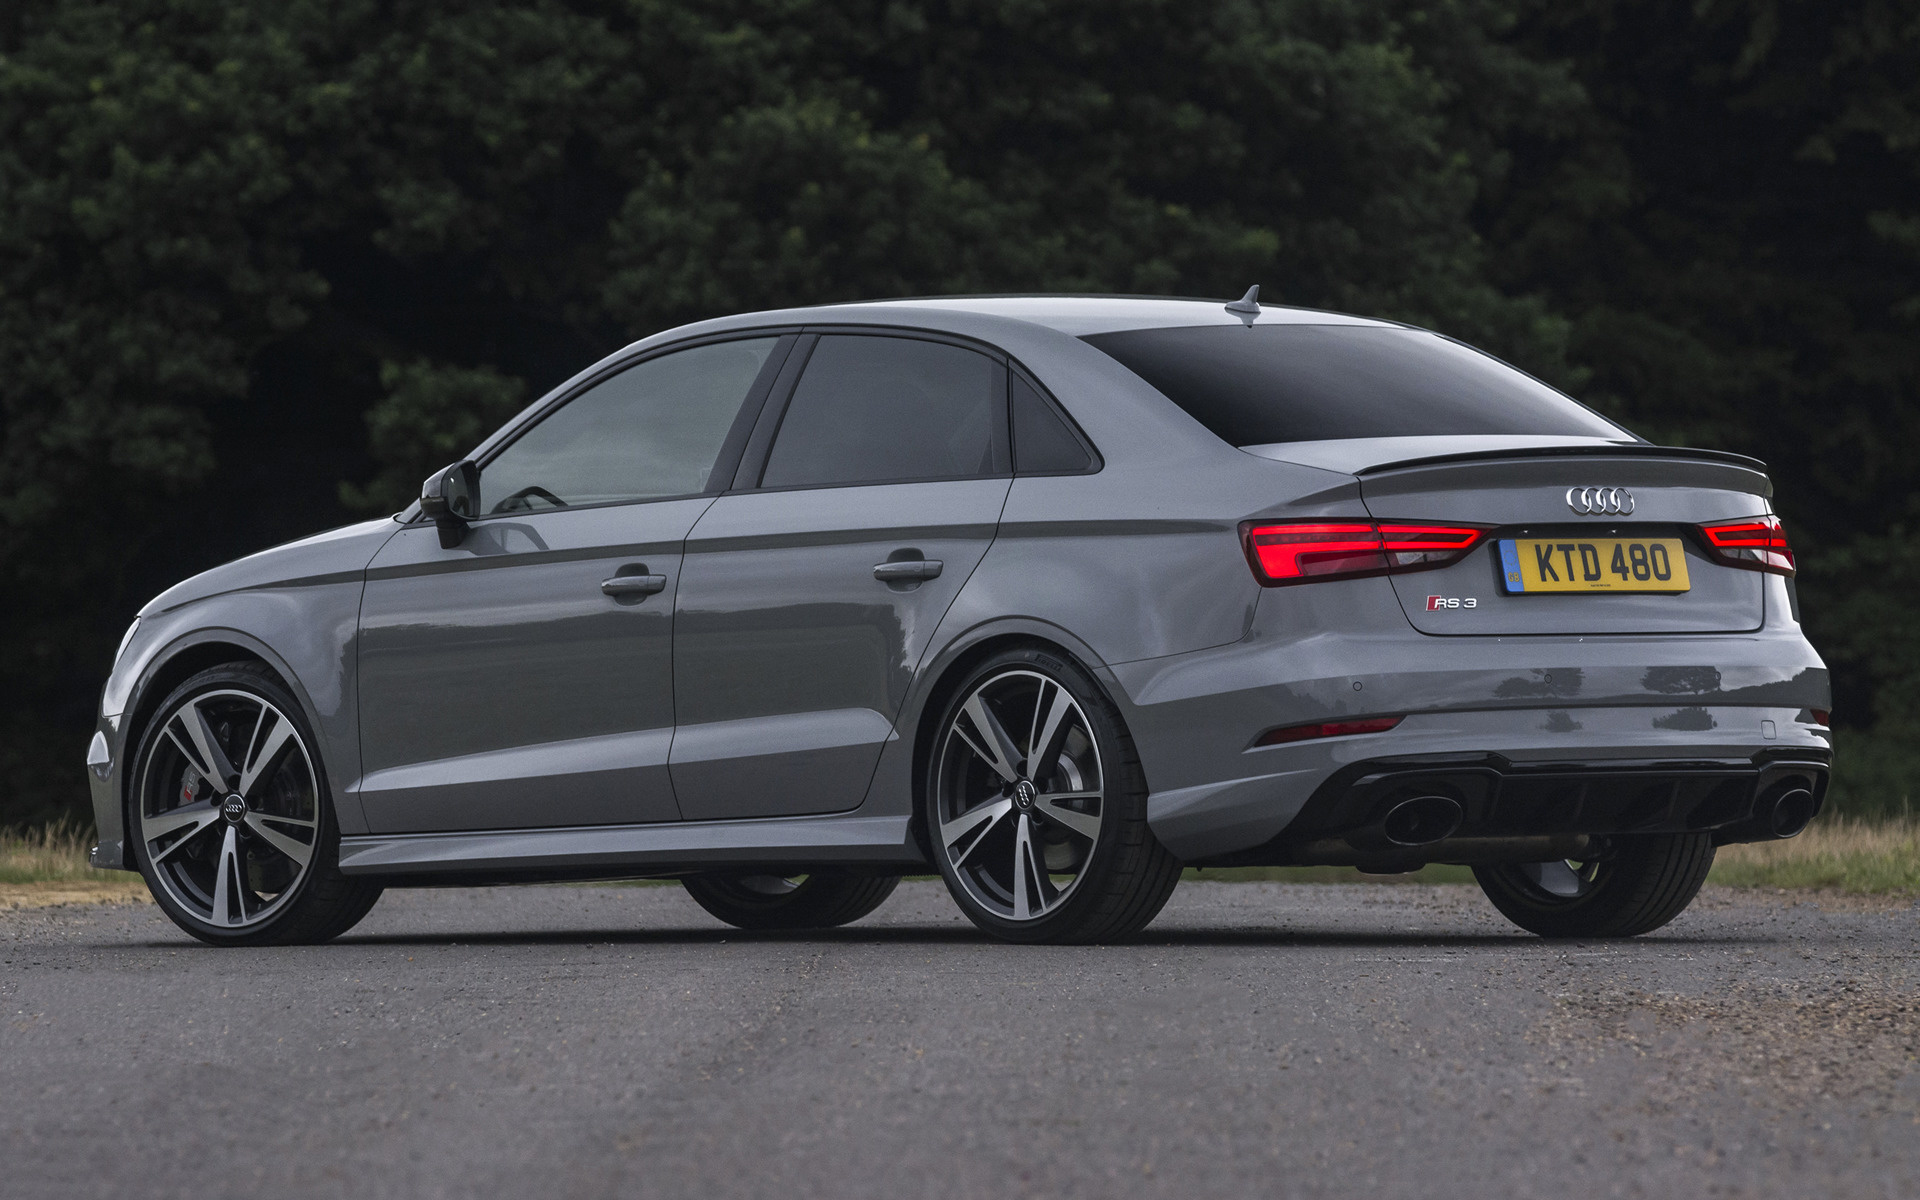 2017 audi rs 3 saloon (uk) - wallpapers and hd images | car pixel